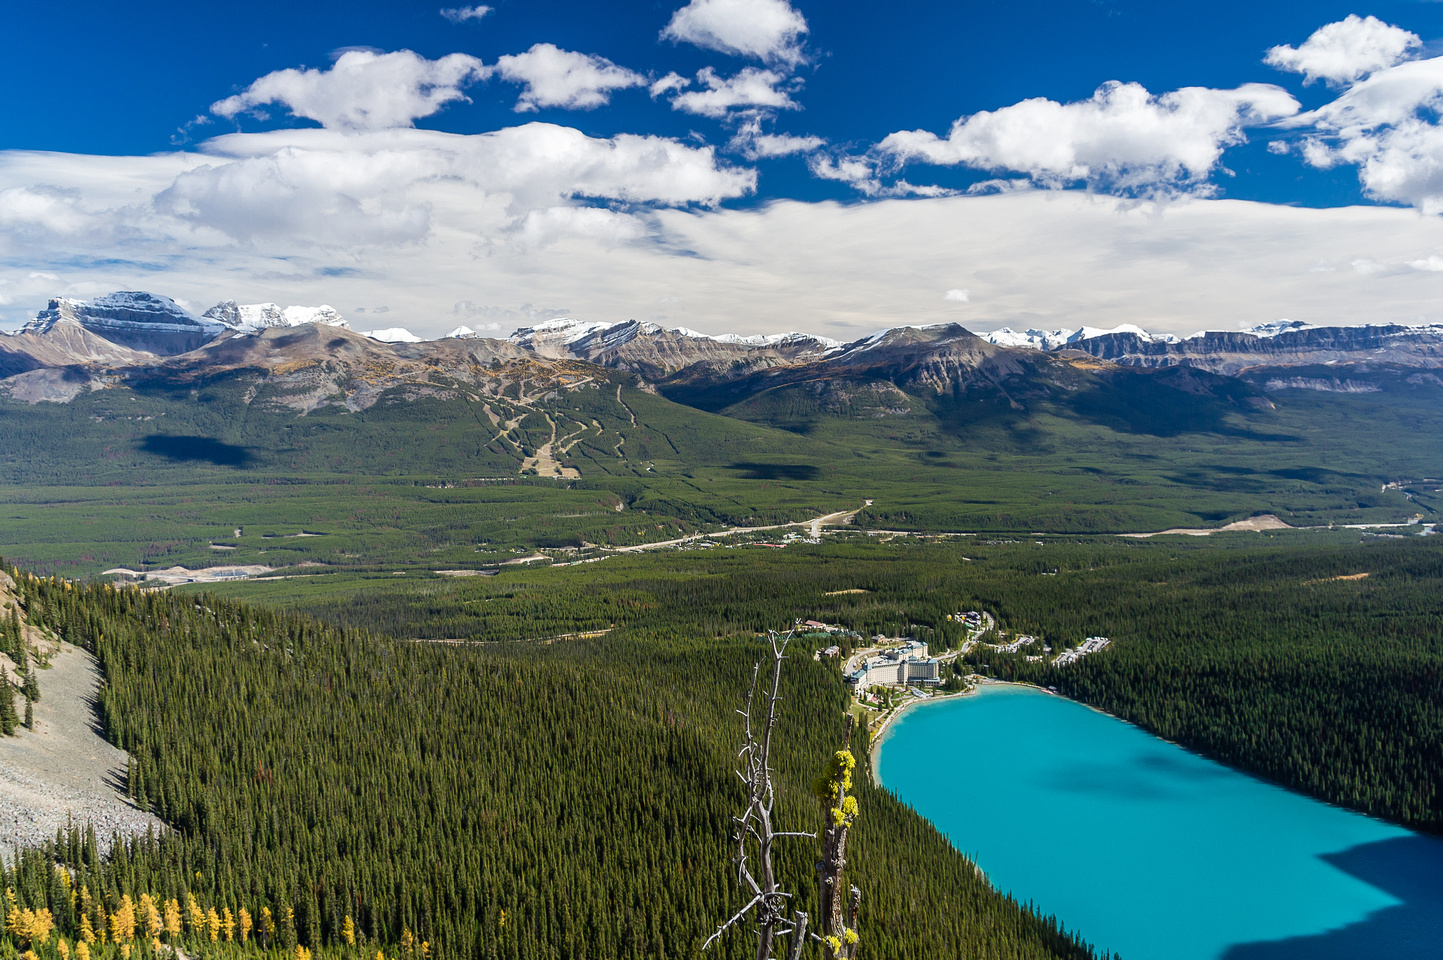 The Lake Louise ski resort lies across the TCH.